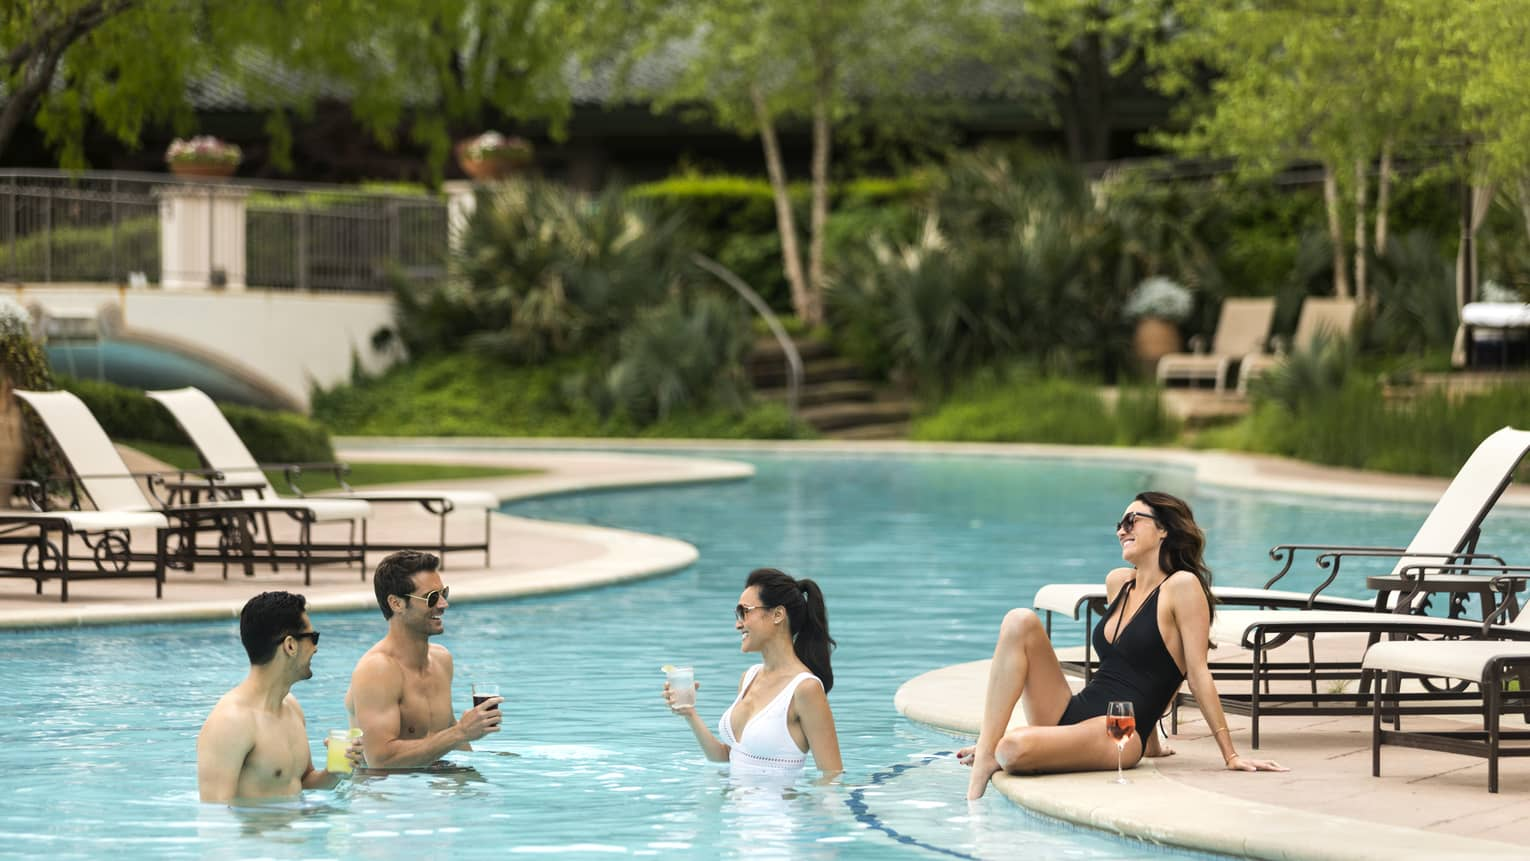 Two men and two women relaxing in and near a pool, trees and greenery in the background.